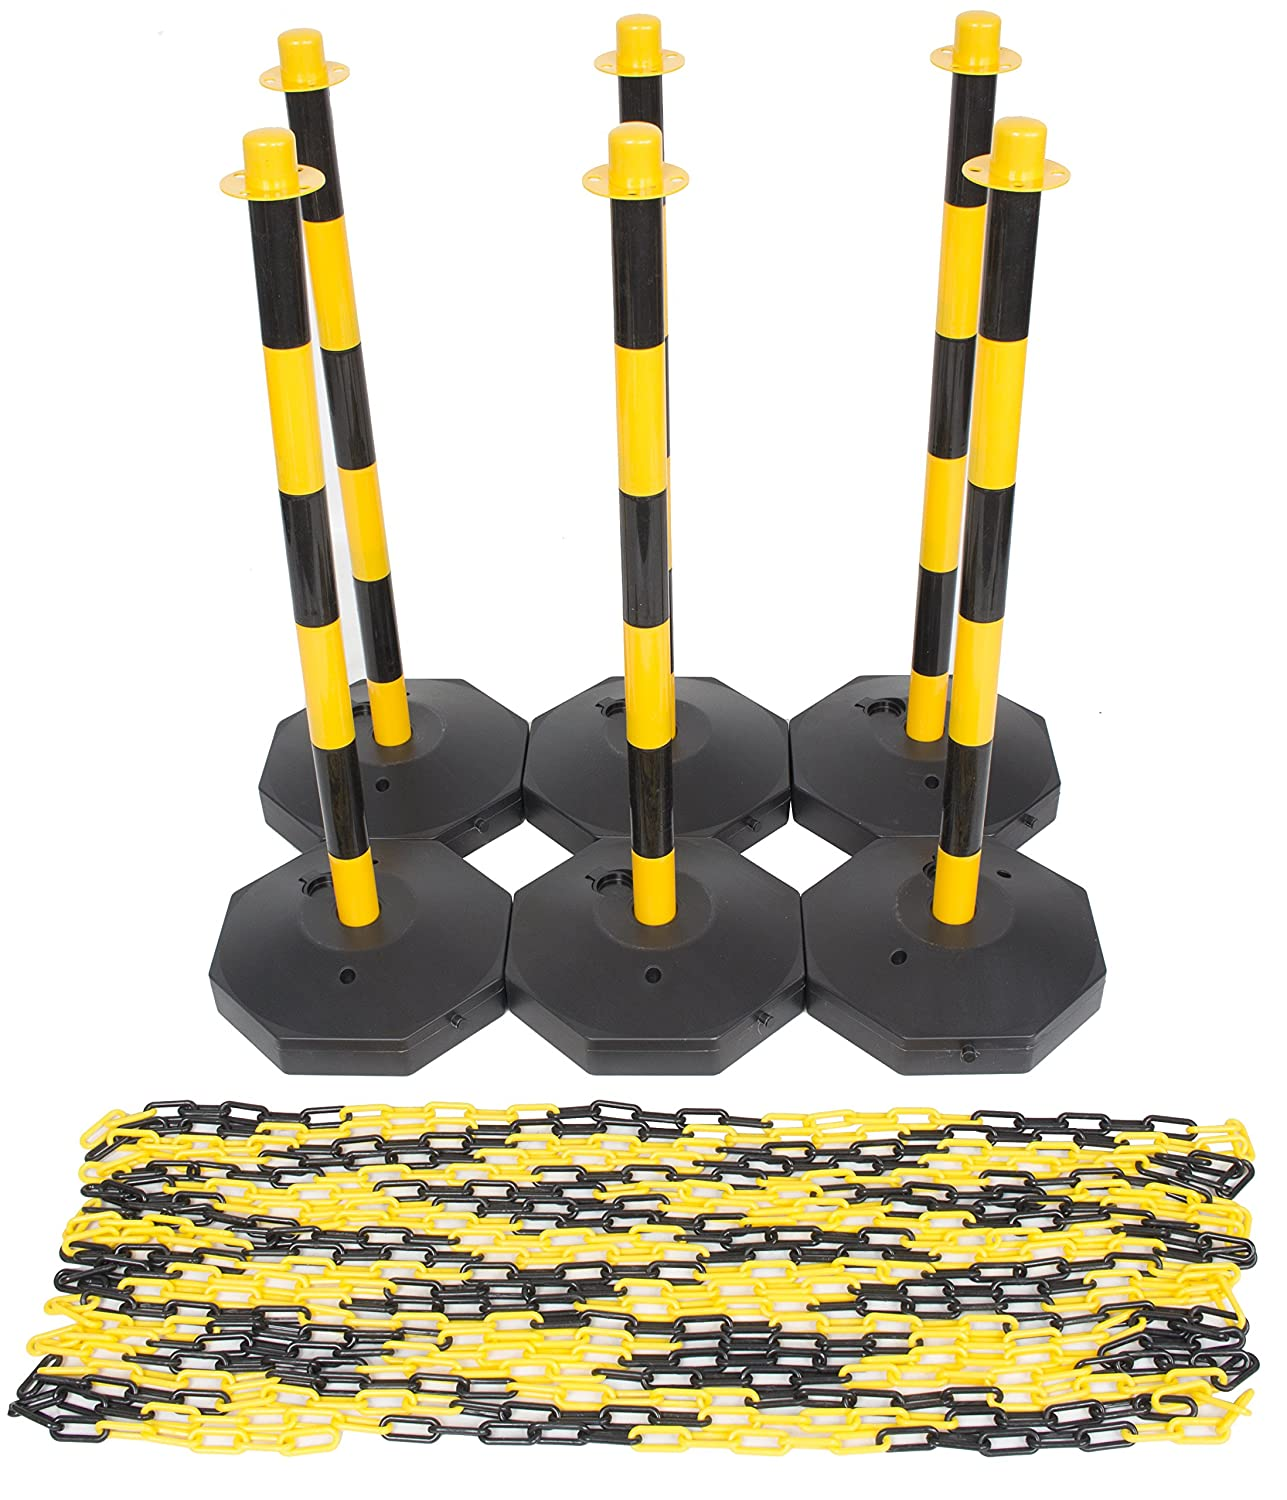 6 Pack Yellow /& Black Plastic Chain Post Set Demarcation Safety Chain Barrier Post Pole with Base and 15mtr Plastic Chain